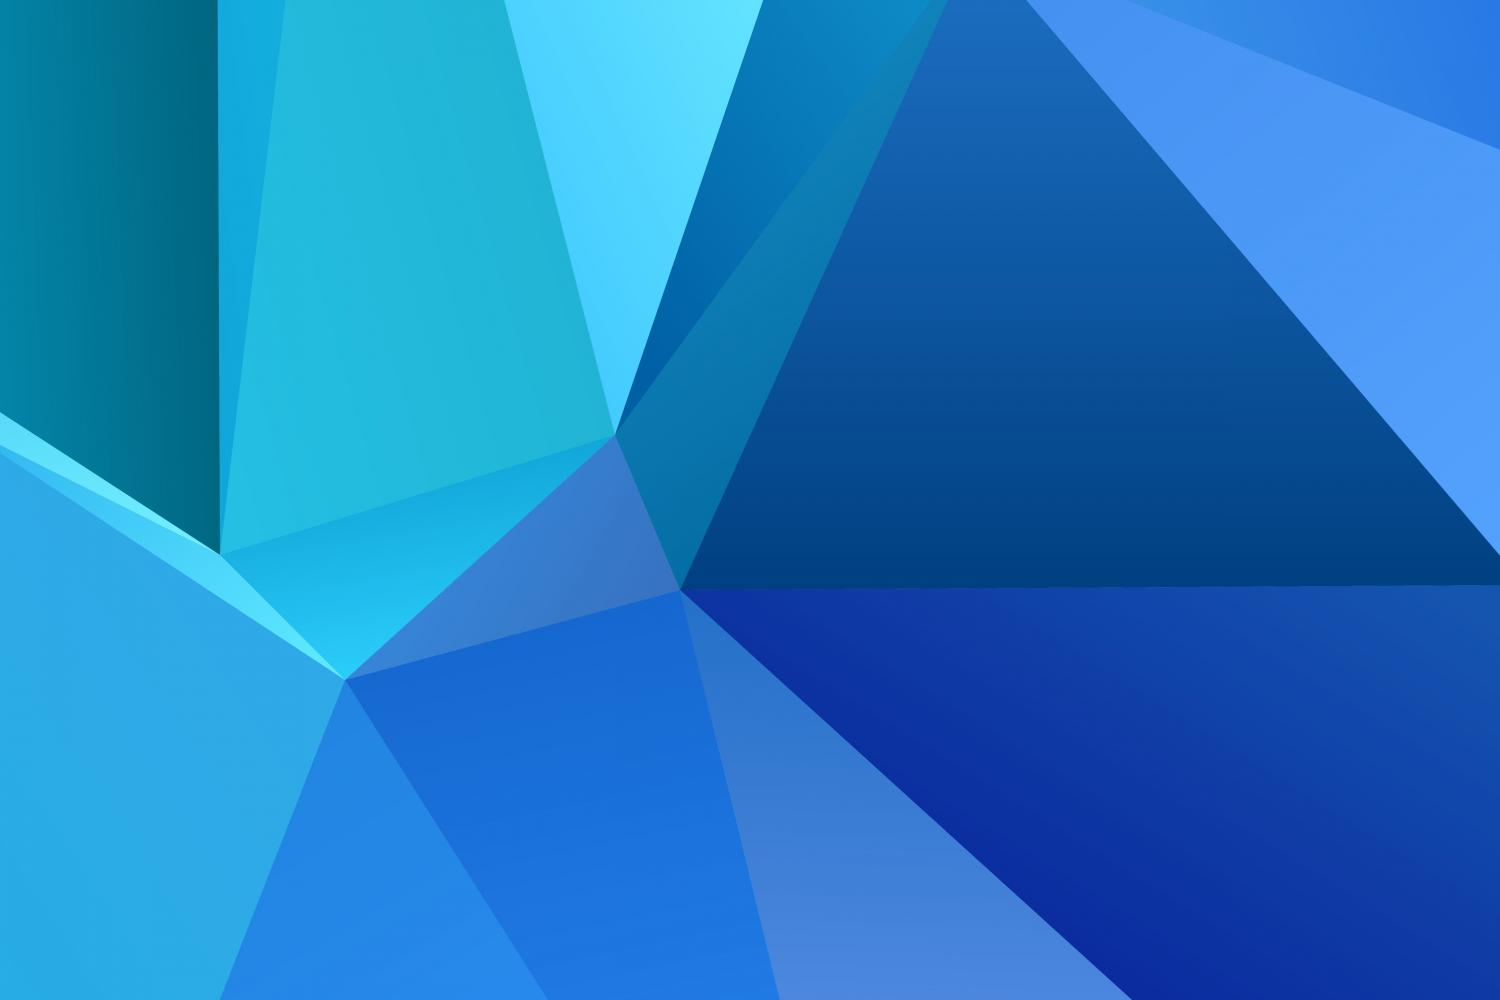 Blue Chaotic Triangle Background Graphic By Davidzydd Creative